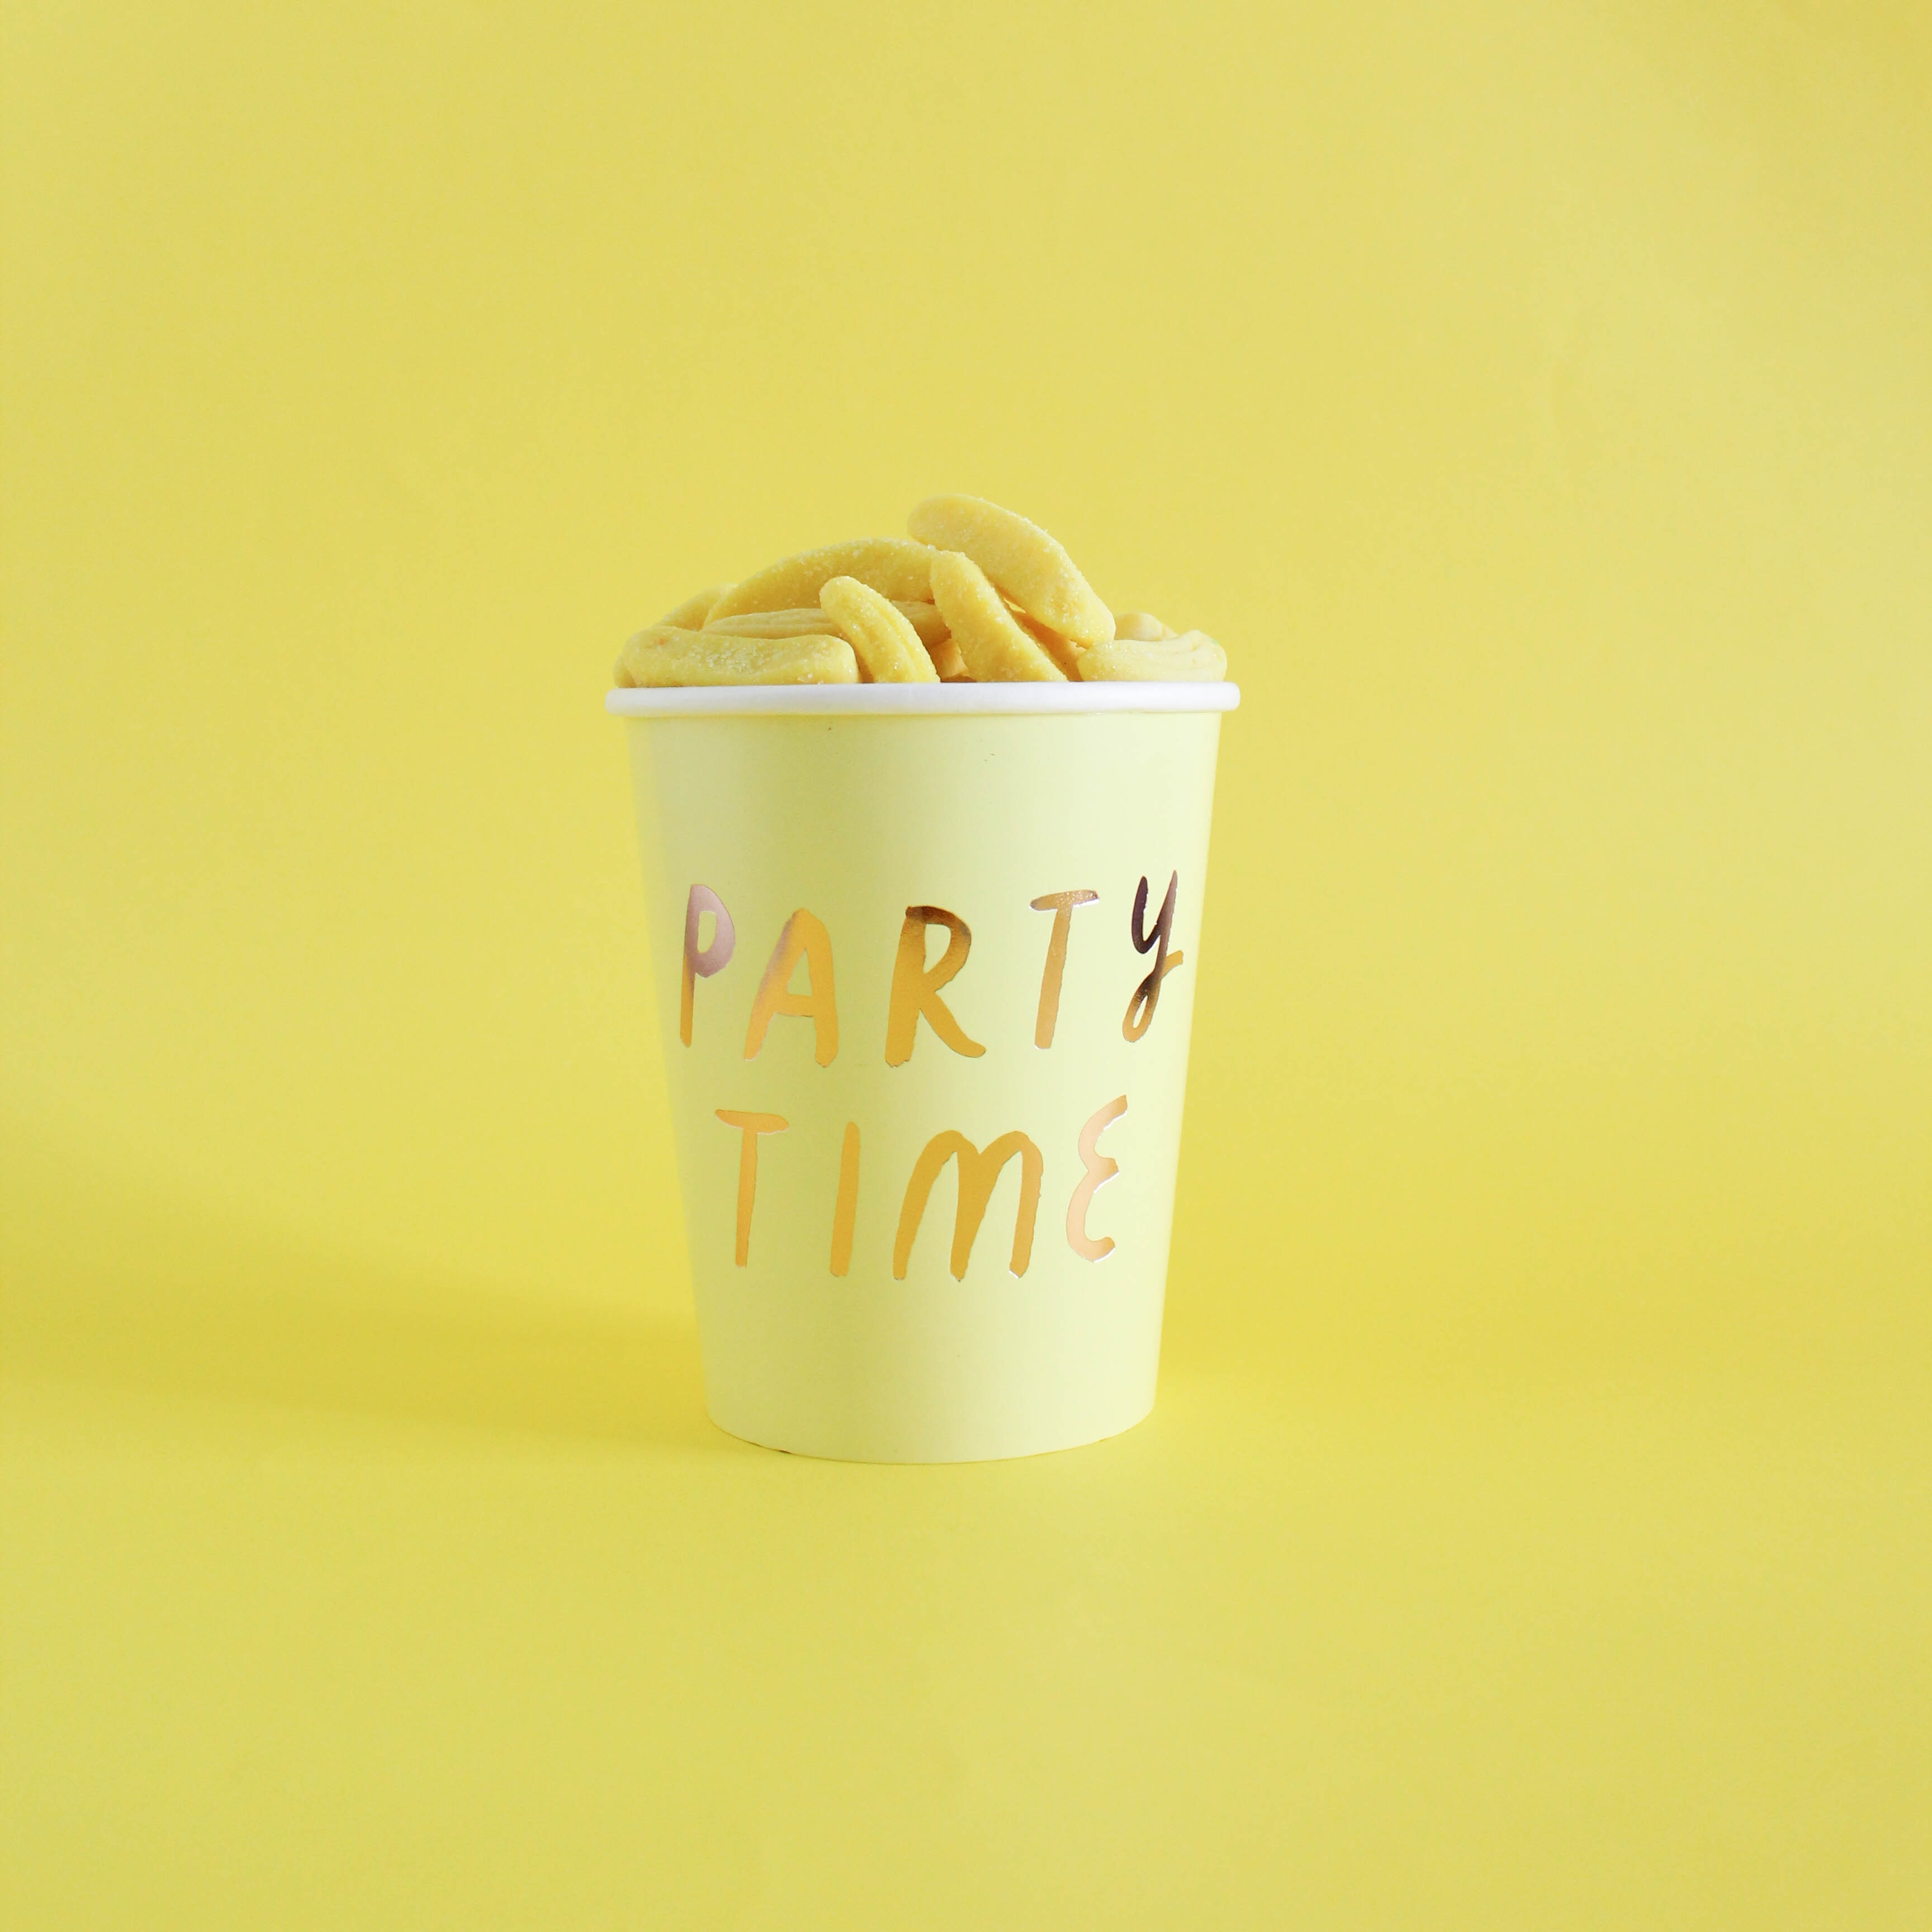 Party Time cup on yellow surface